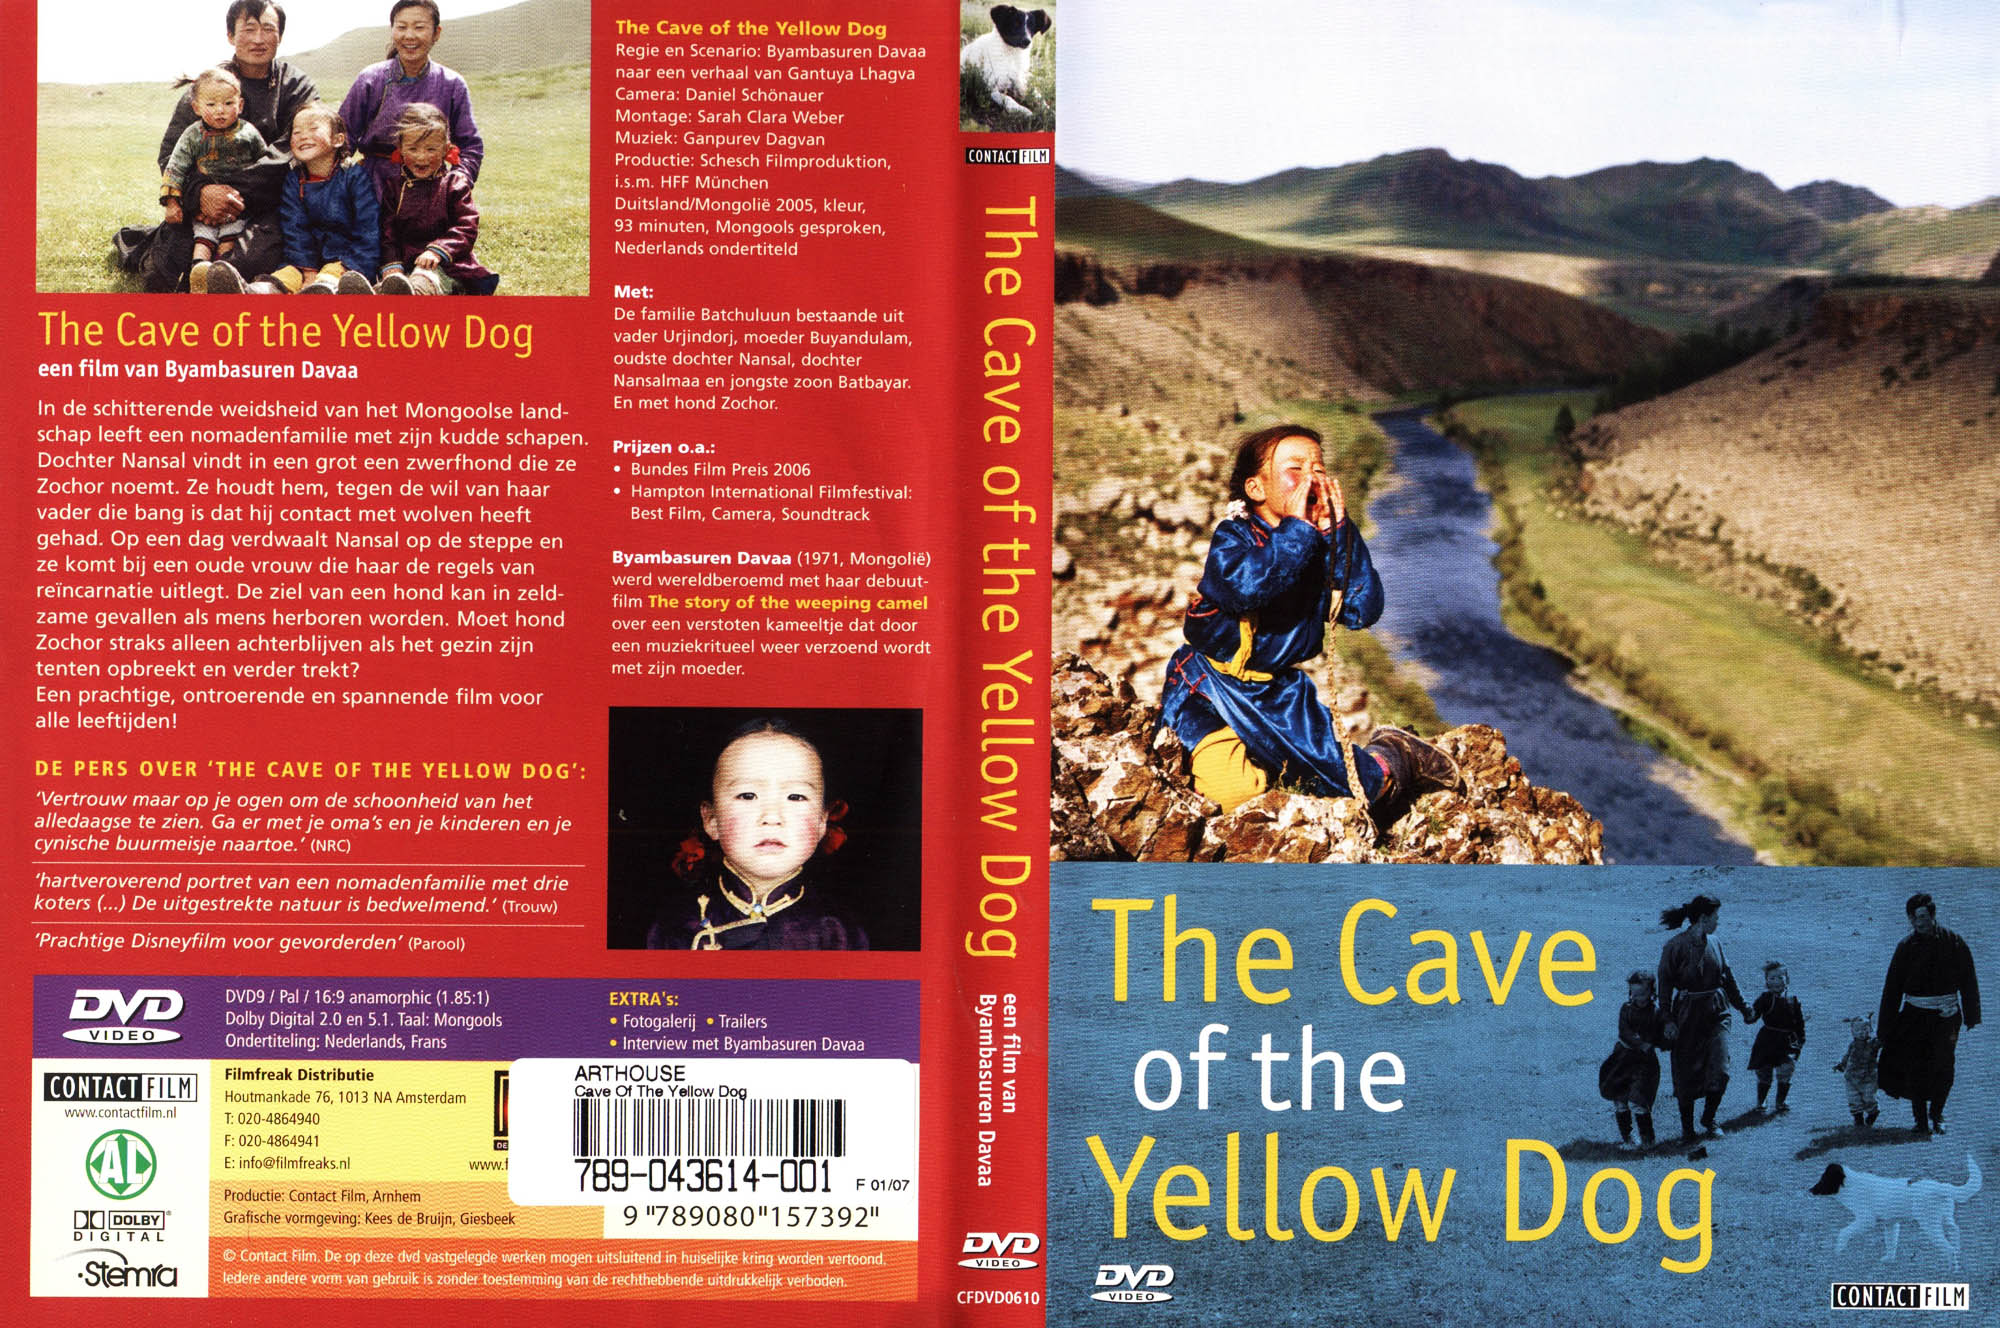 cave of the yellow dog The cave of the yellow dog (2005) the little nomad girl nansal finds a baby dog in the mongolian veld, who becomes her best friend - against all rejections of her parents a story about a mongolian family of nomads - their traditional way of life and the rising call of the city.